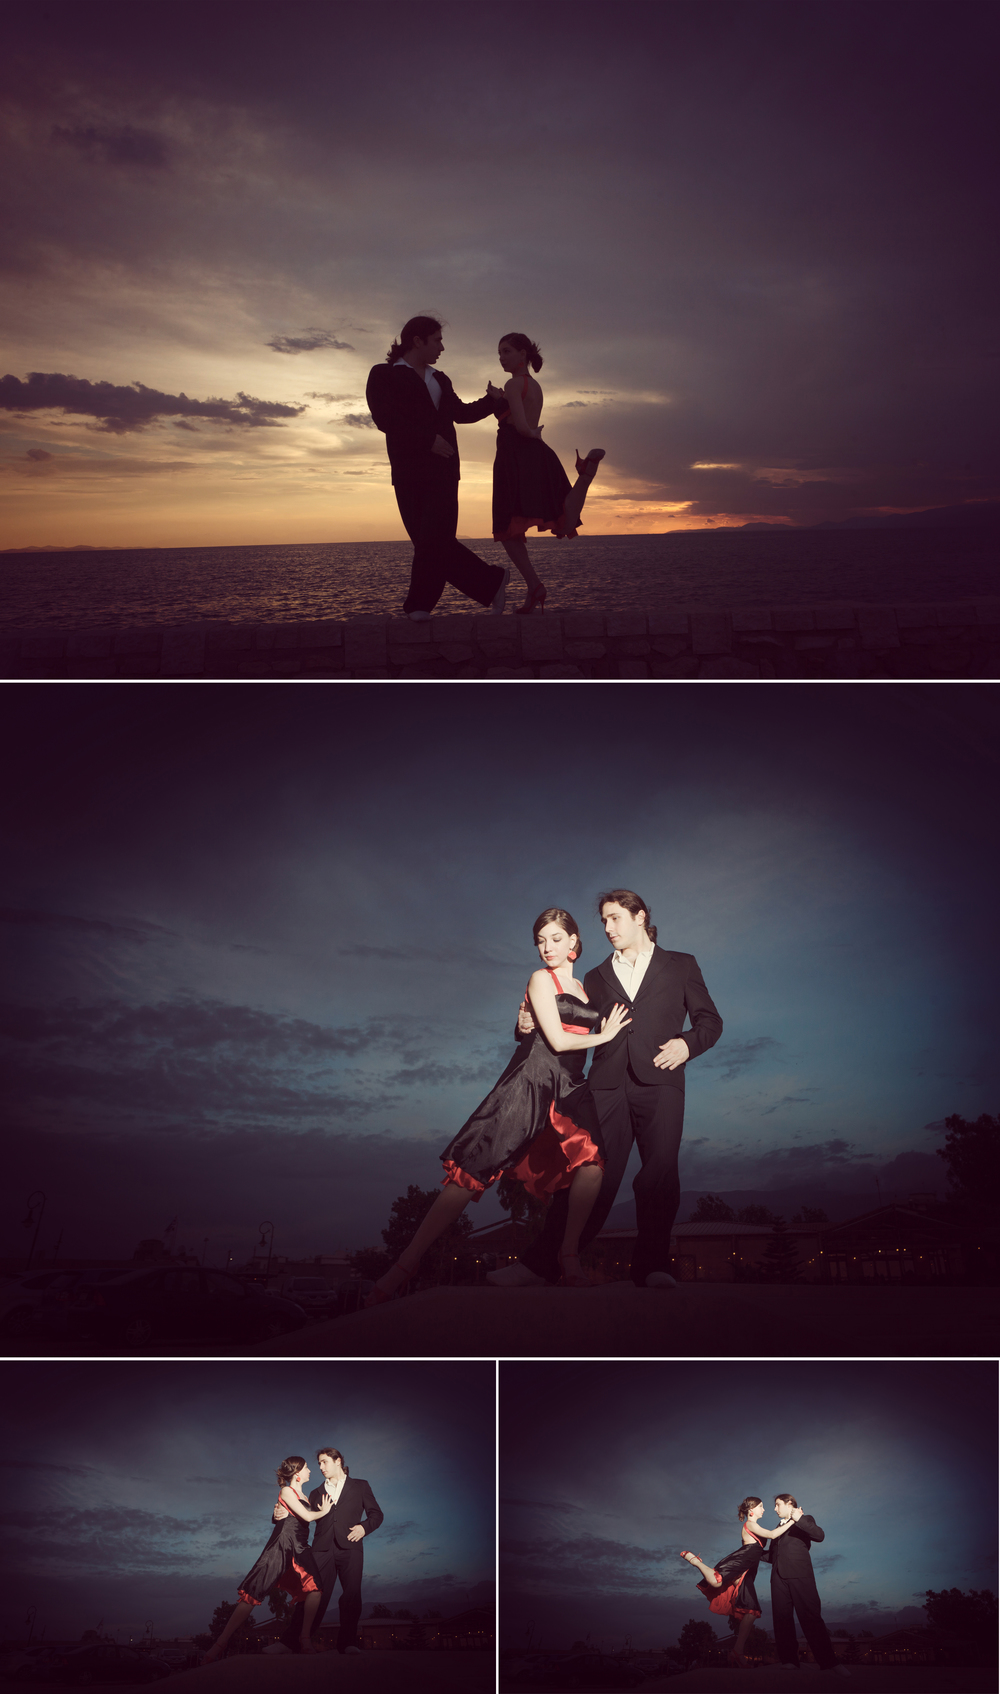 ANDRIOPOULOS_PHOTOGRAPHY TANGO 16.jpg